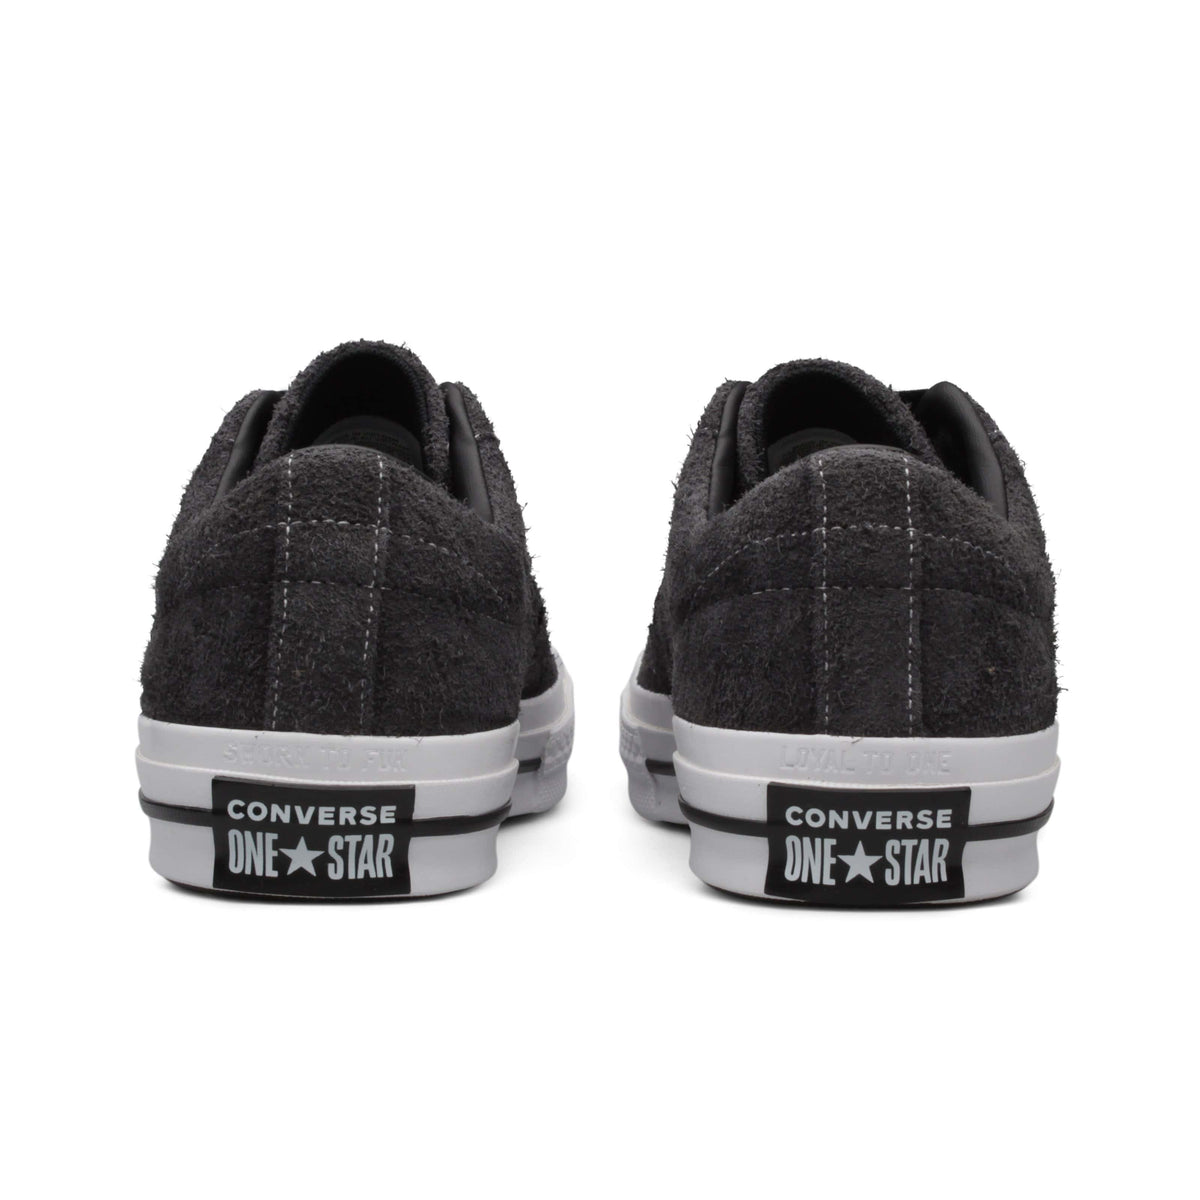 converse one star almost ブラック where